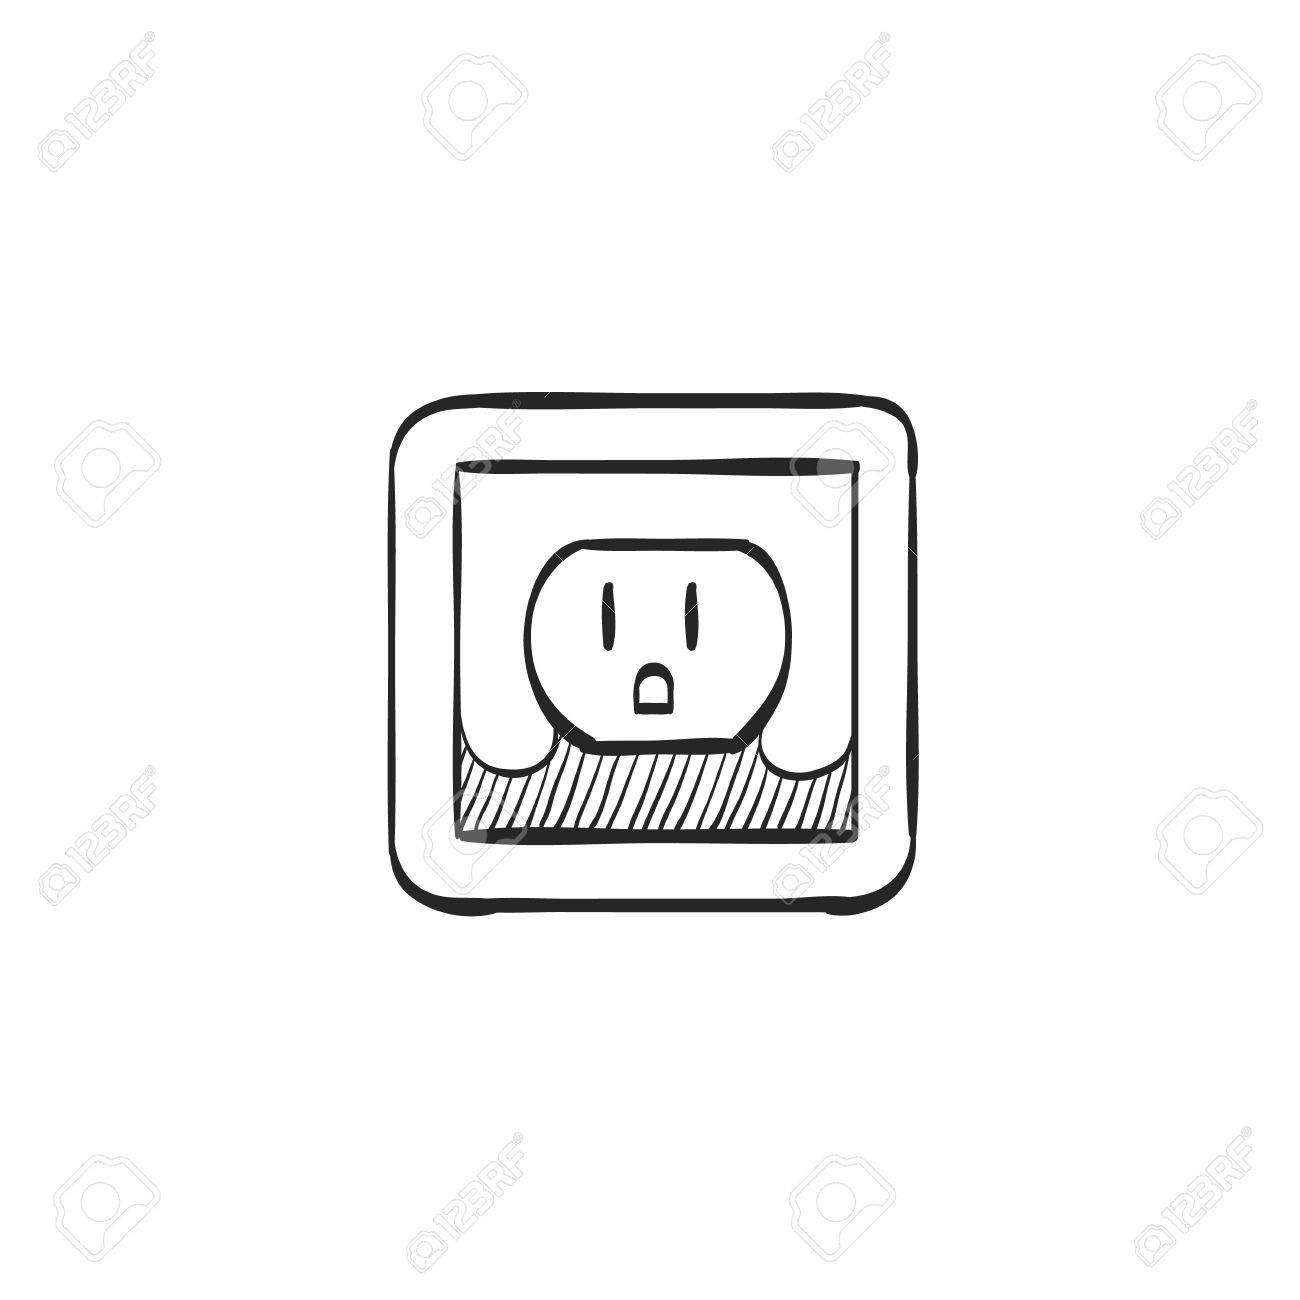 Electrical Outlet Icon In Doodle Sketch Lines Electronic Connect Plug Household Stock Vector